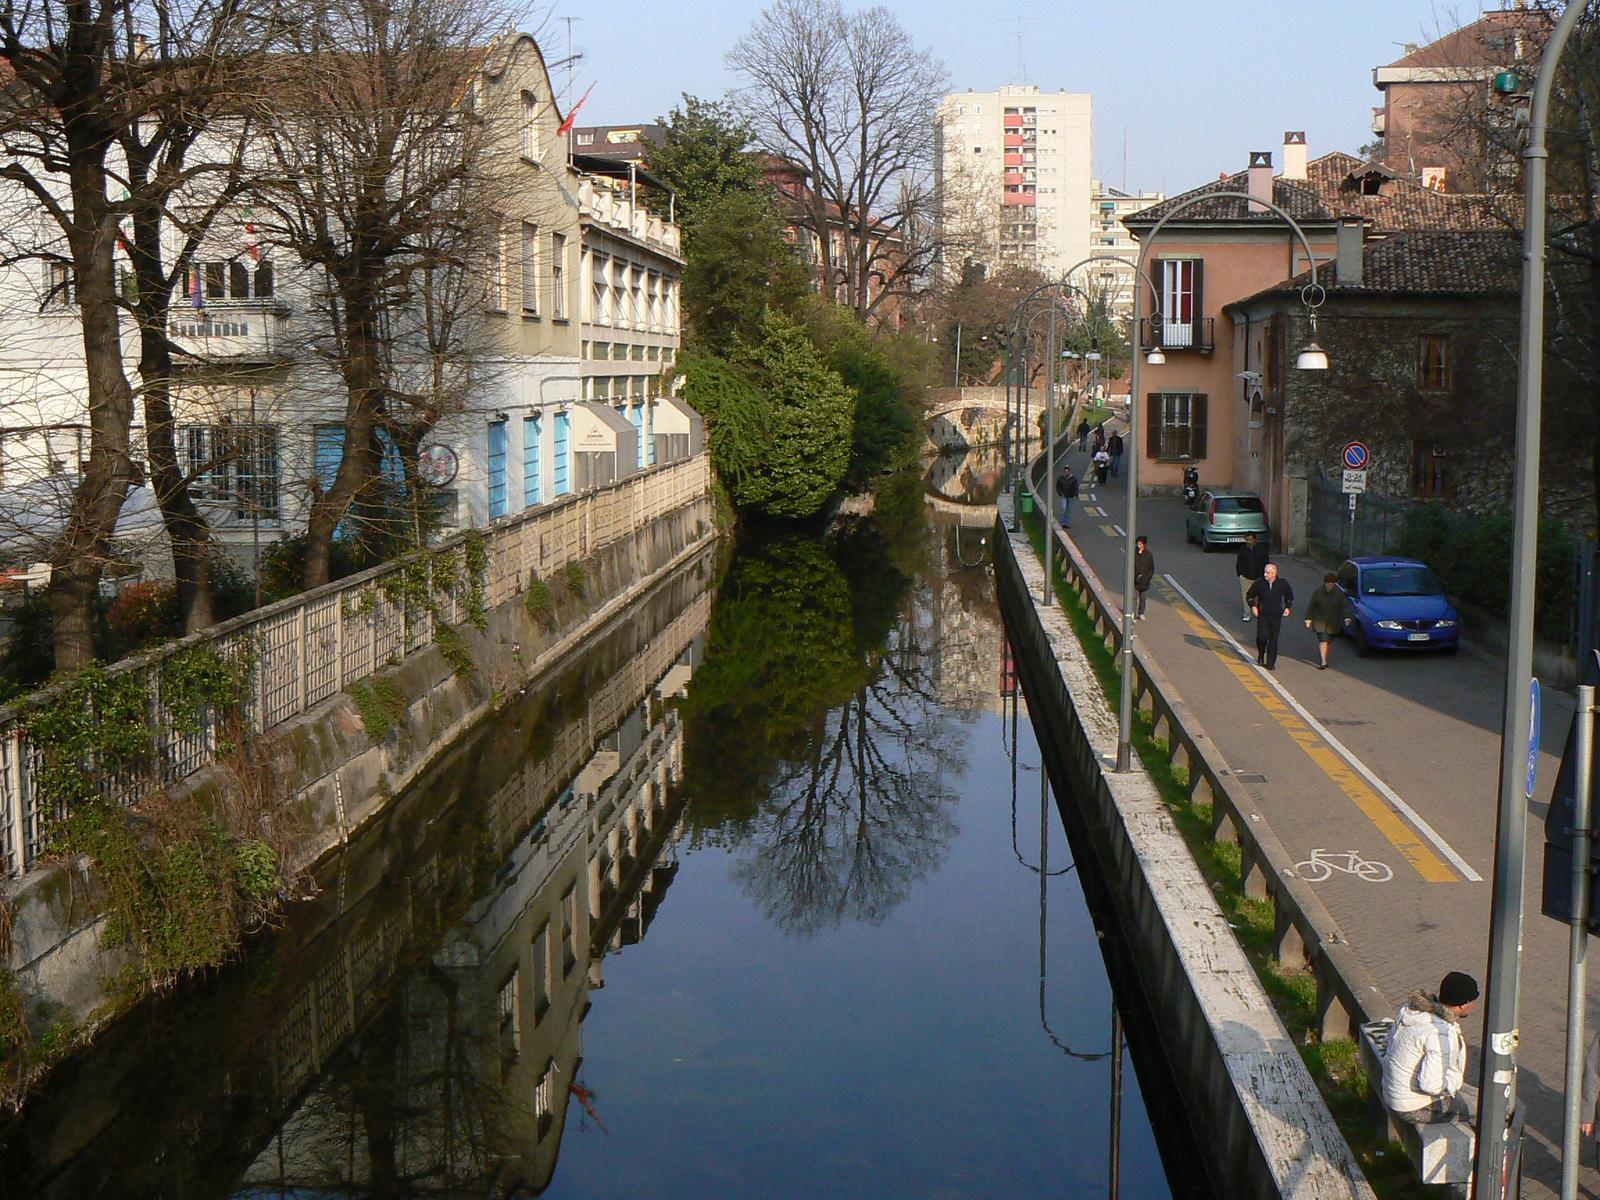 Rent a bike and ride down the canals